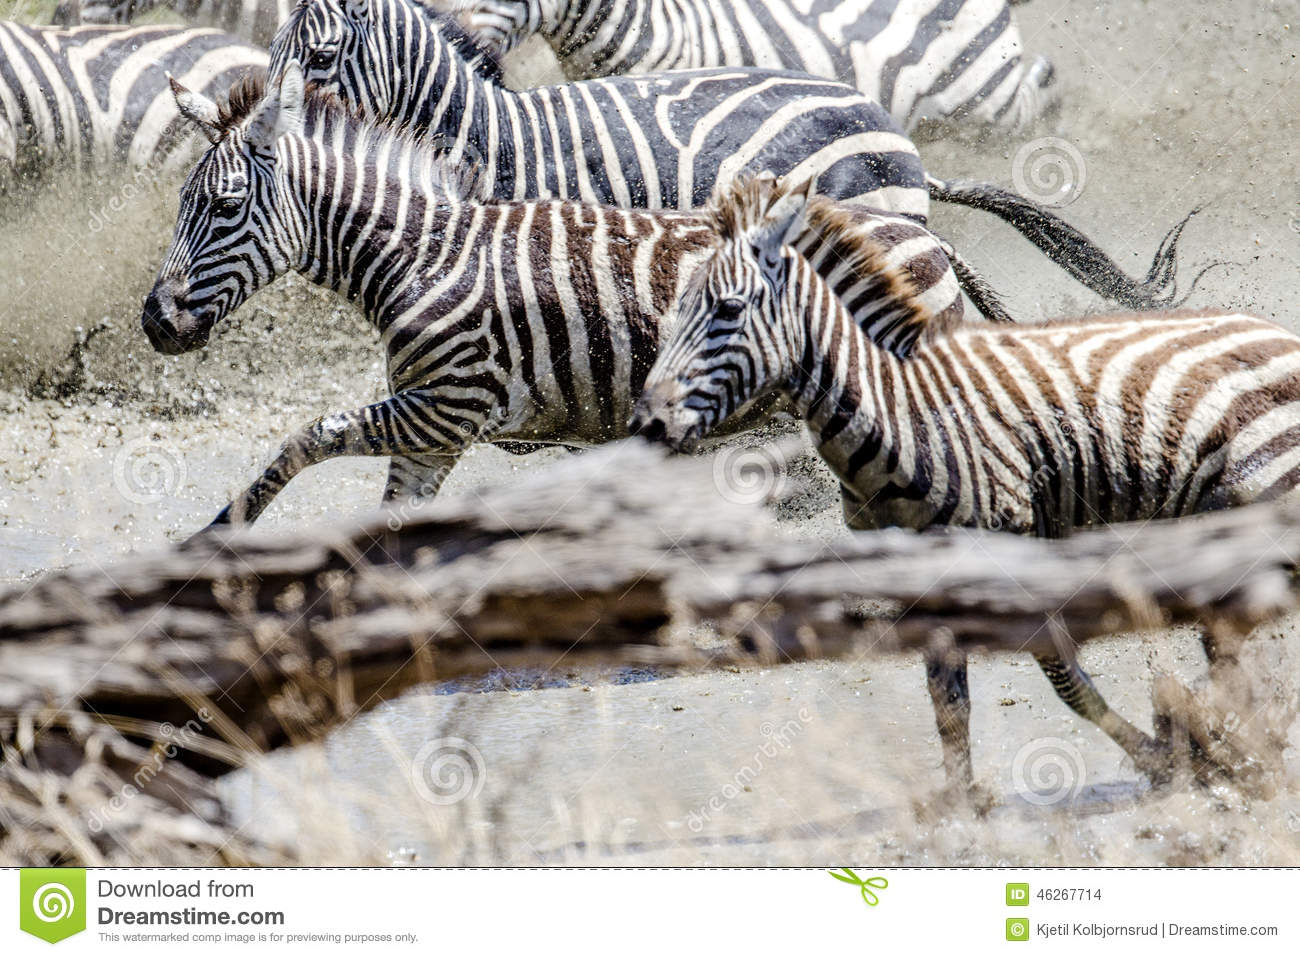 zebras running from predator - photo #13